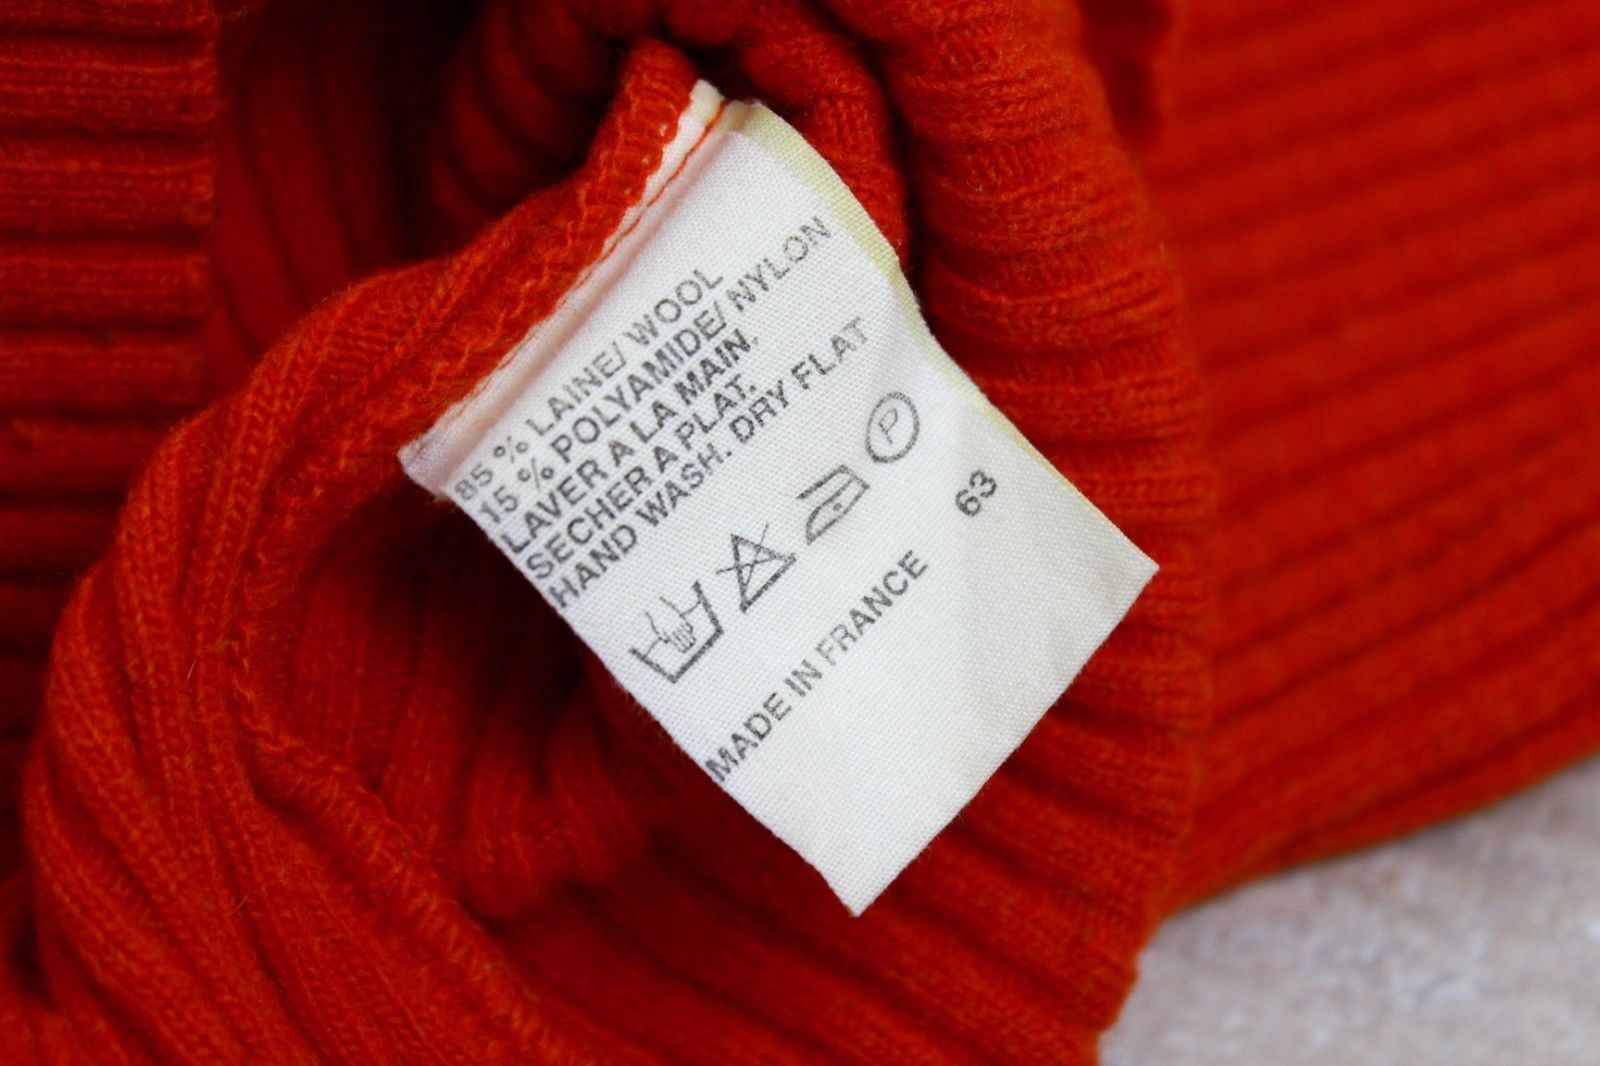 A.P.C. Orange Wool Blend Knit Jumper Sweater, SIZE S - secondfirst